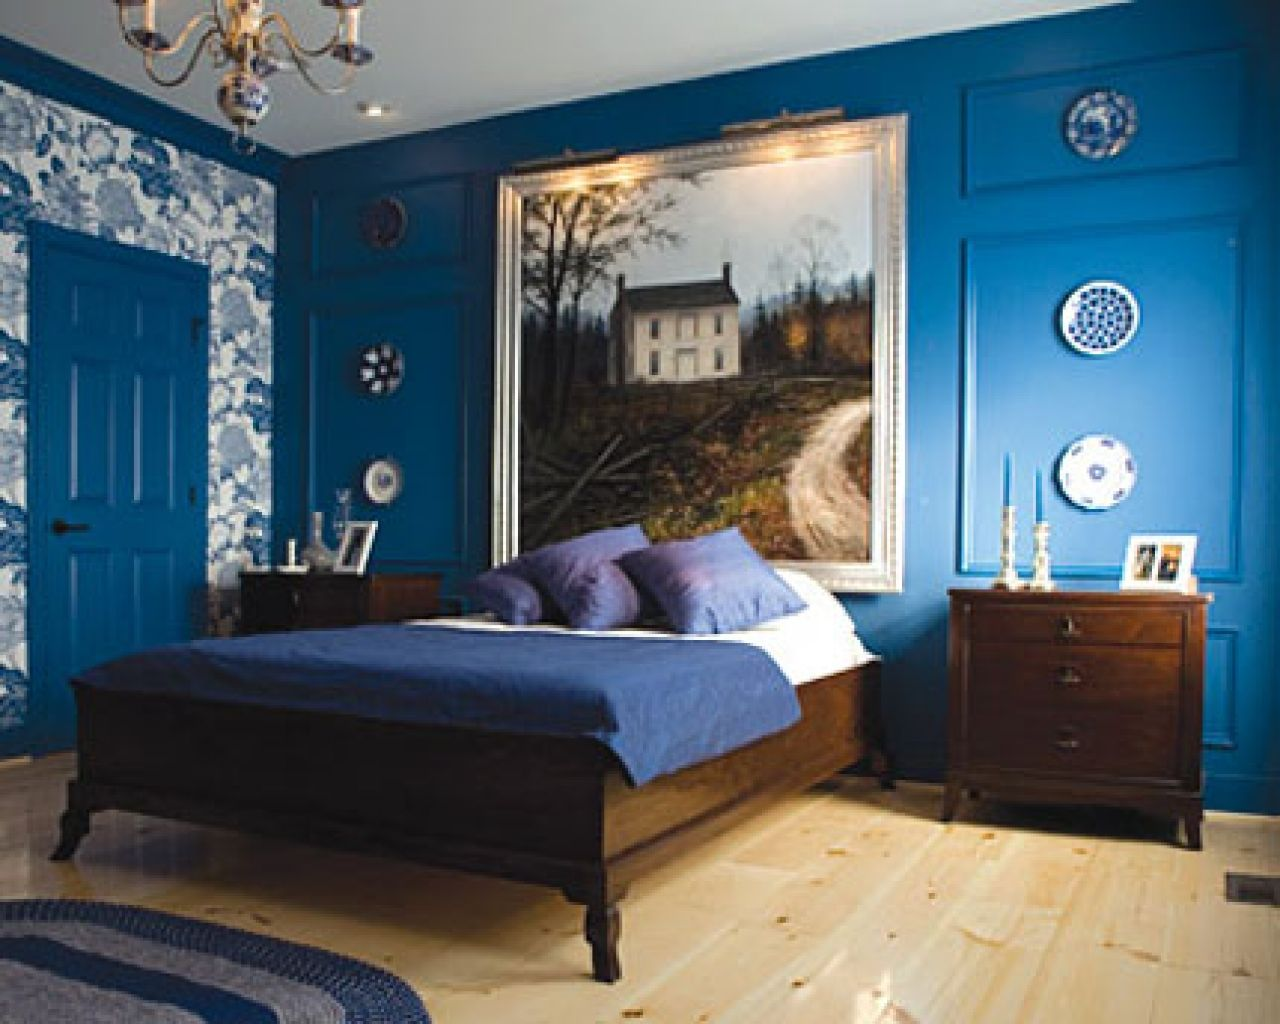 Bedroom Painting Design Ideas Pretty Natural Bedroom Paint Ideas Cute Blue  Wall Idp Interior Design Part 68